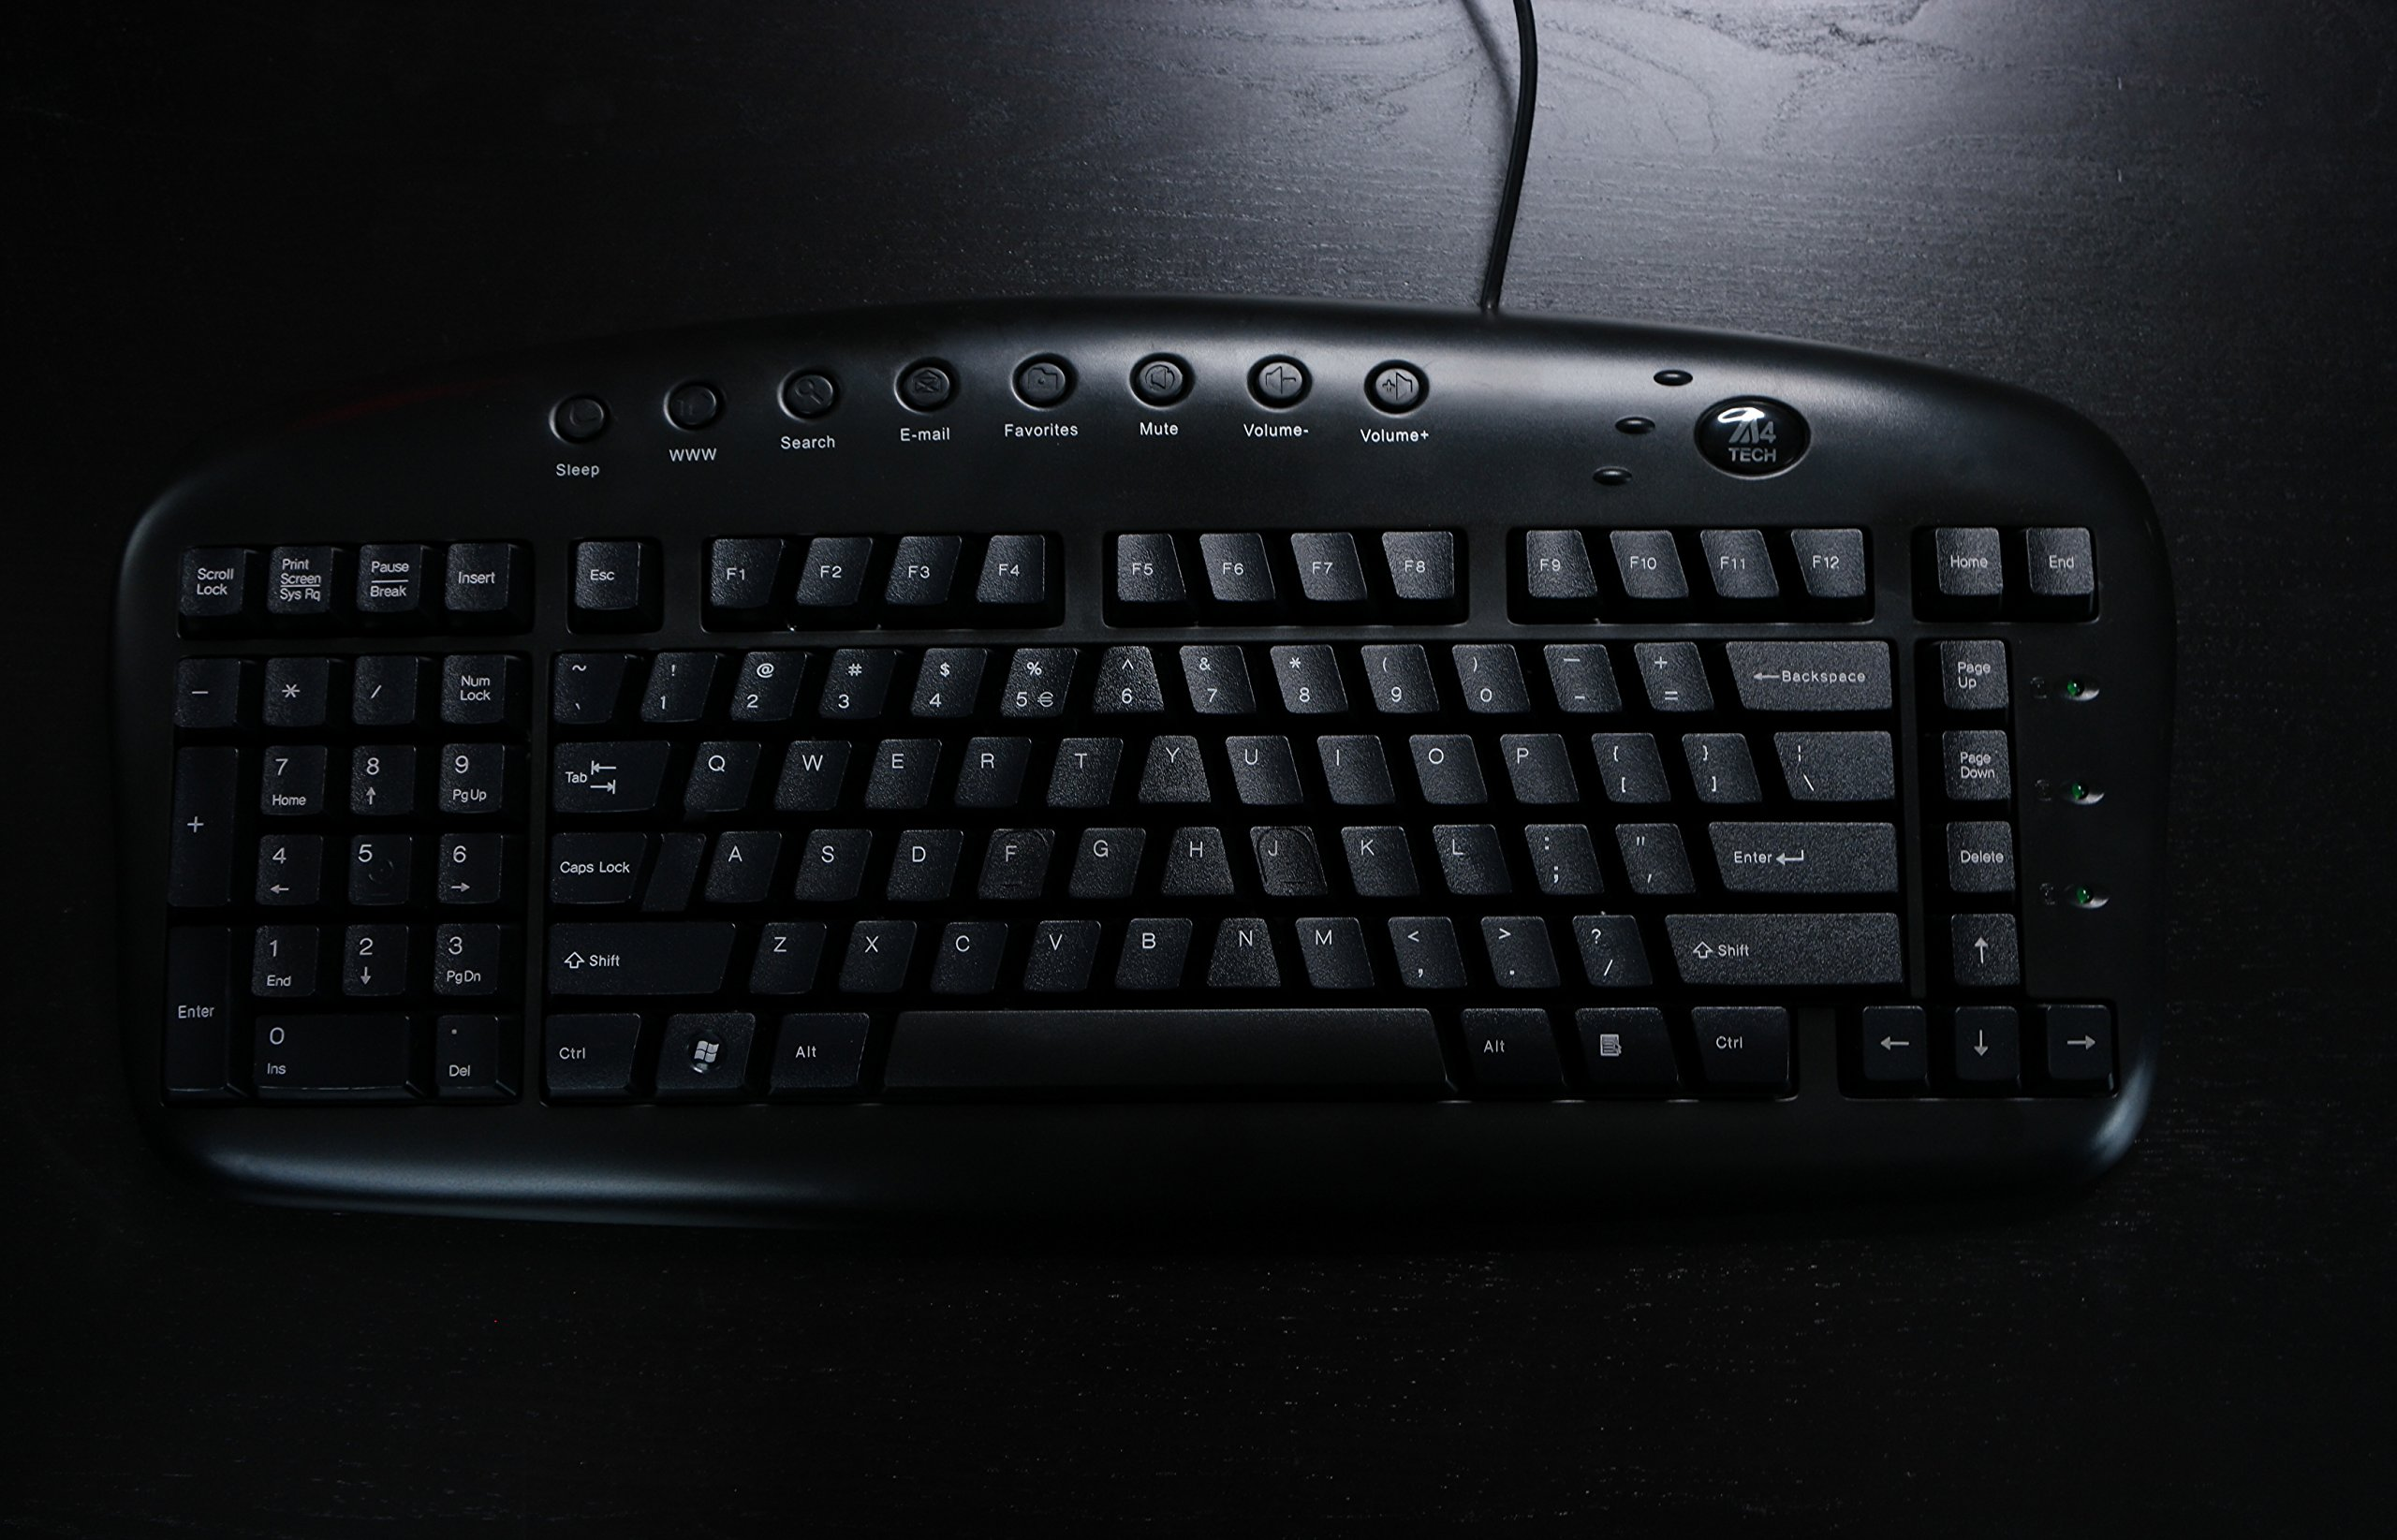 Ergonomic Left Handed Keyboard for Business/Accounting - 8 Multimedia Hotkeys - Eliminates RSI and Carpal Tunnel - Patented Natural_A Keycaps to Reduce Back and Shoulder Strain to Improve Posture